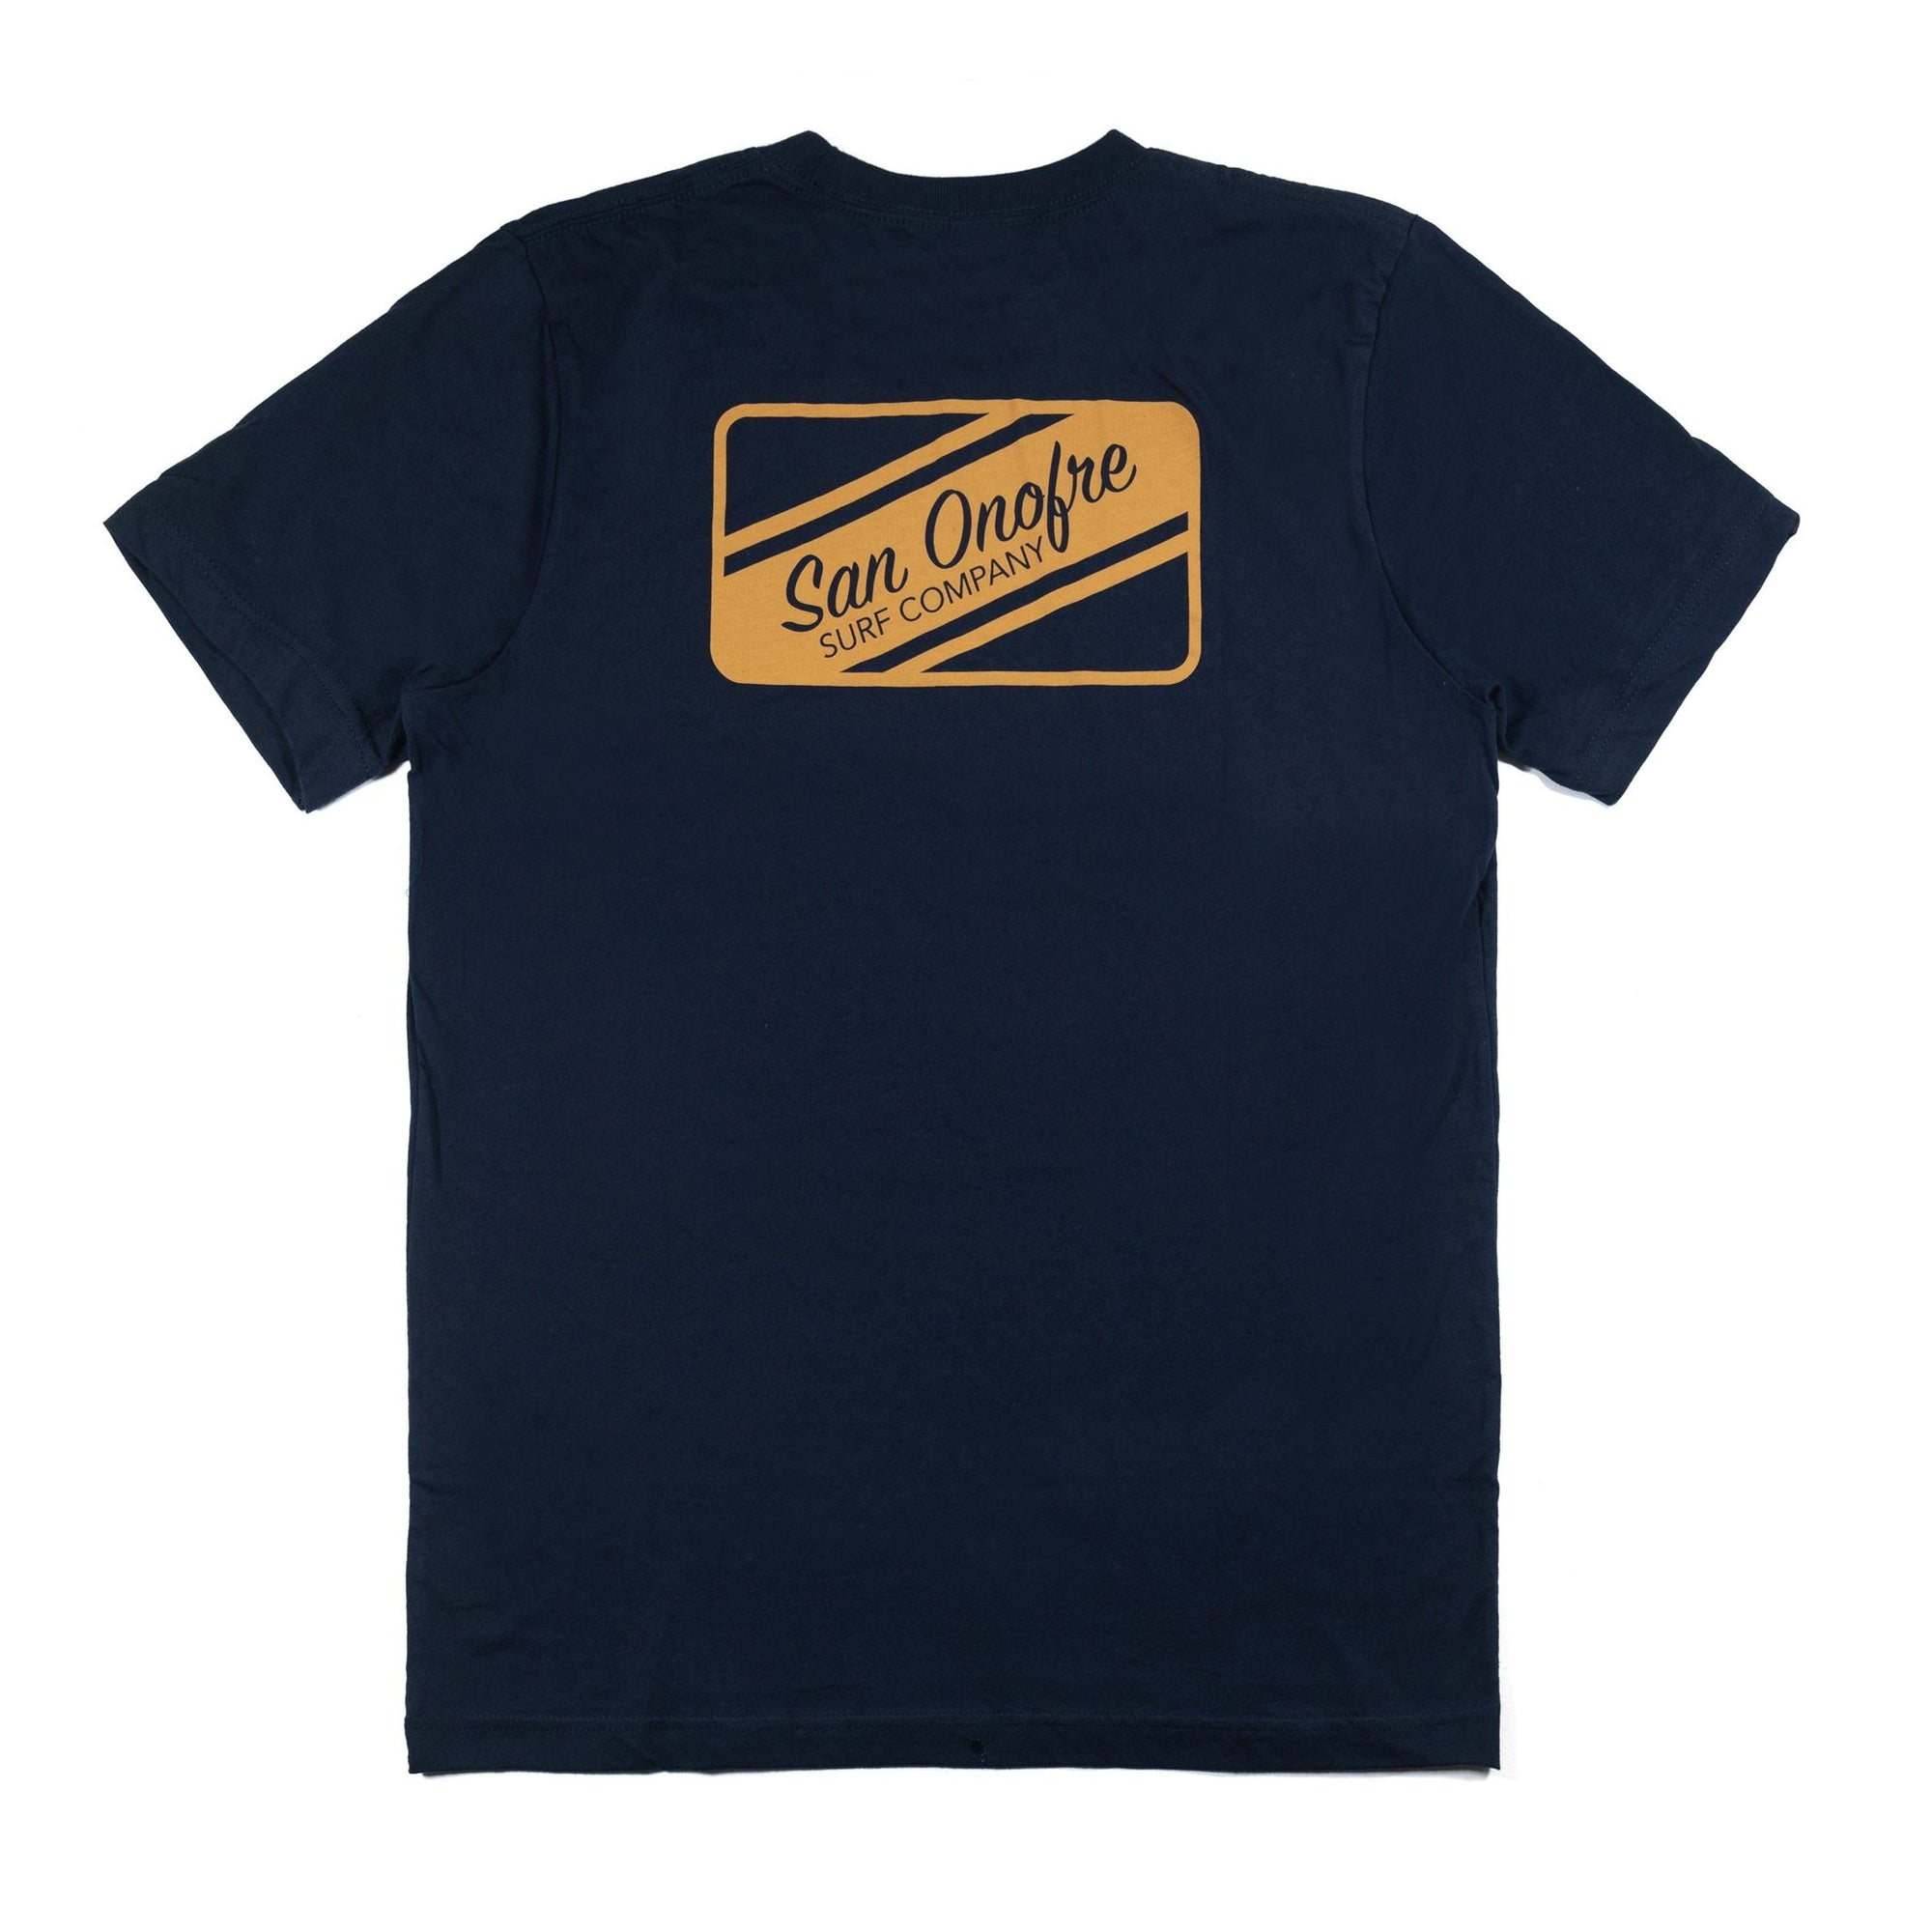 San Onofre Surf Clothing Co. Striper Patch T - Navy